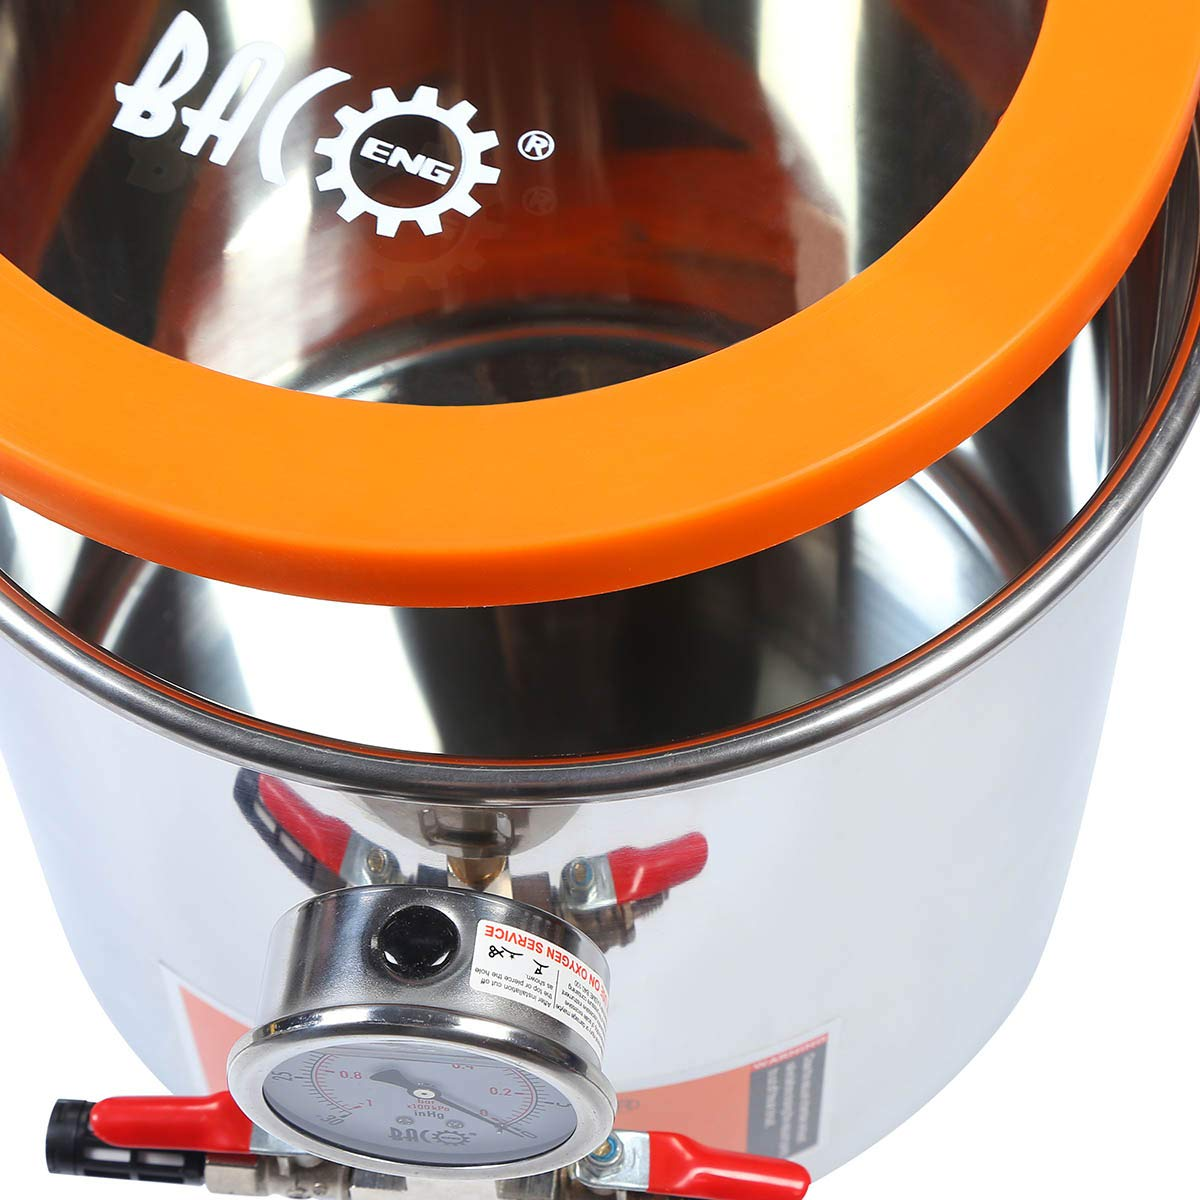 BACOENG 3 Gallon Tempered Glass Lid Stainless Steel Vacuum Chamer Perfect for stabilizing Wood, Degassing Silicones, Epoxies and Essential Oils by BACOENG (Image #4)